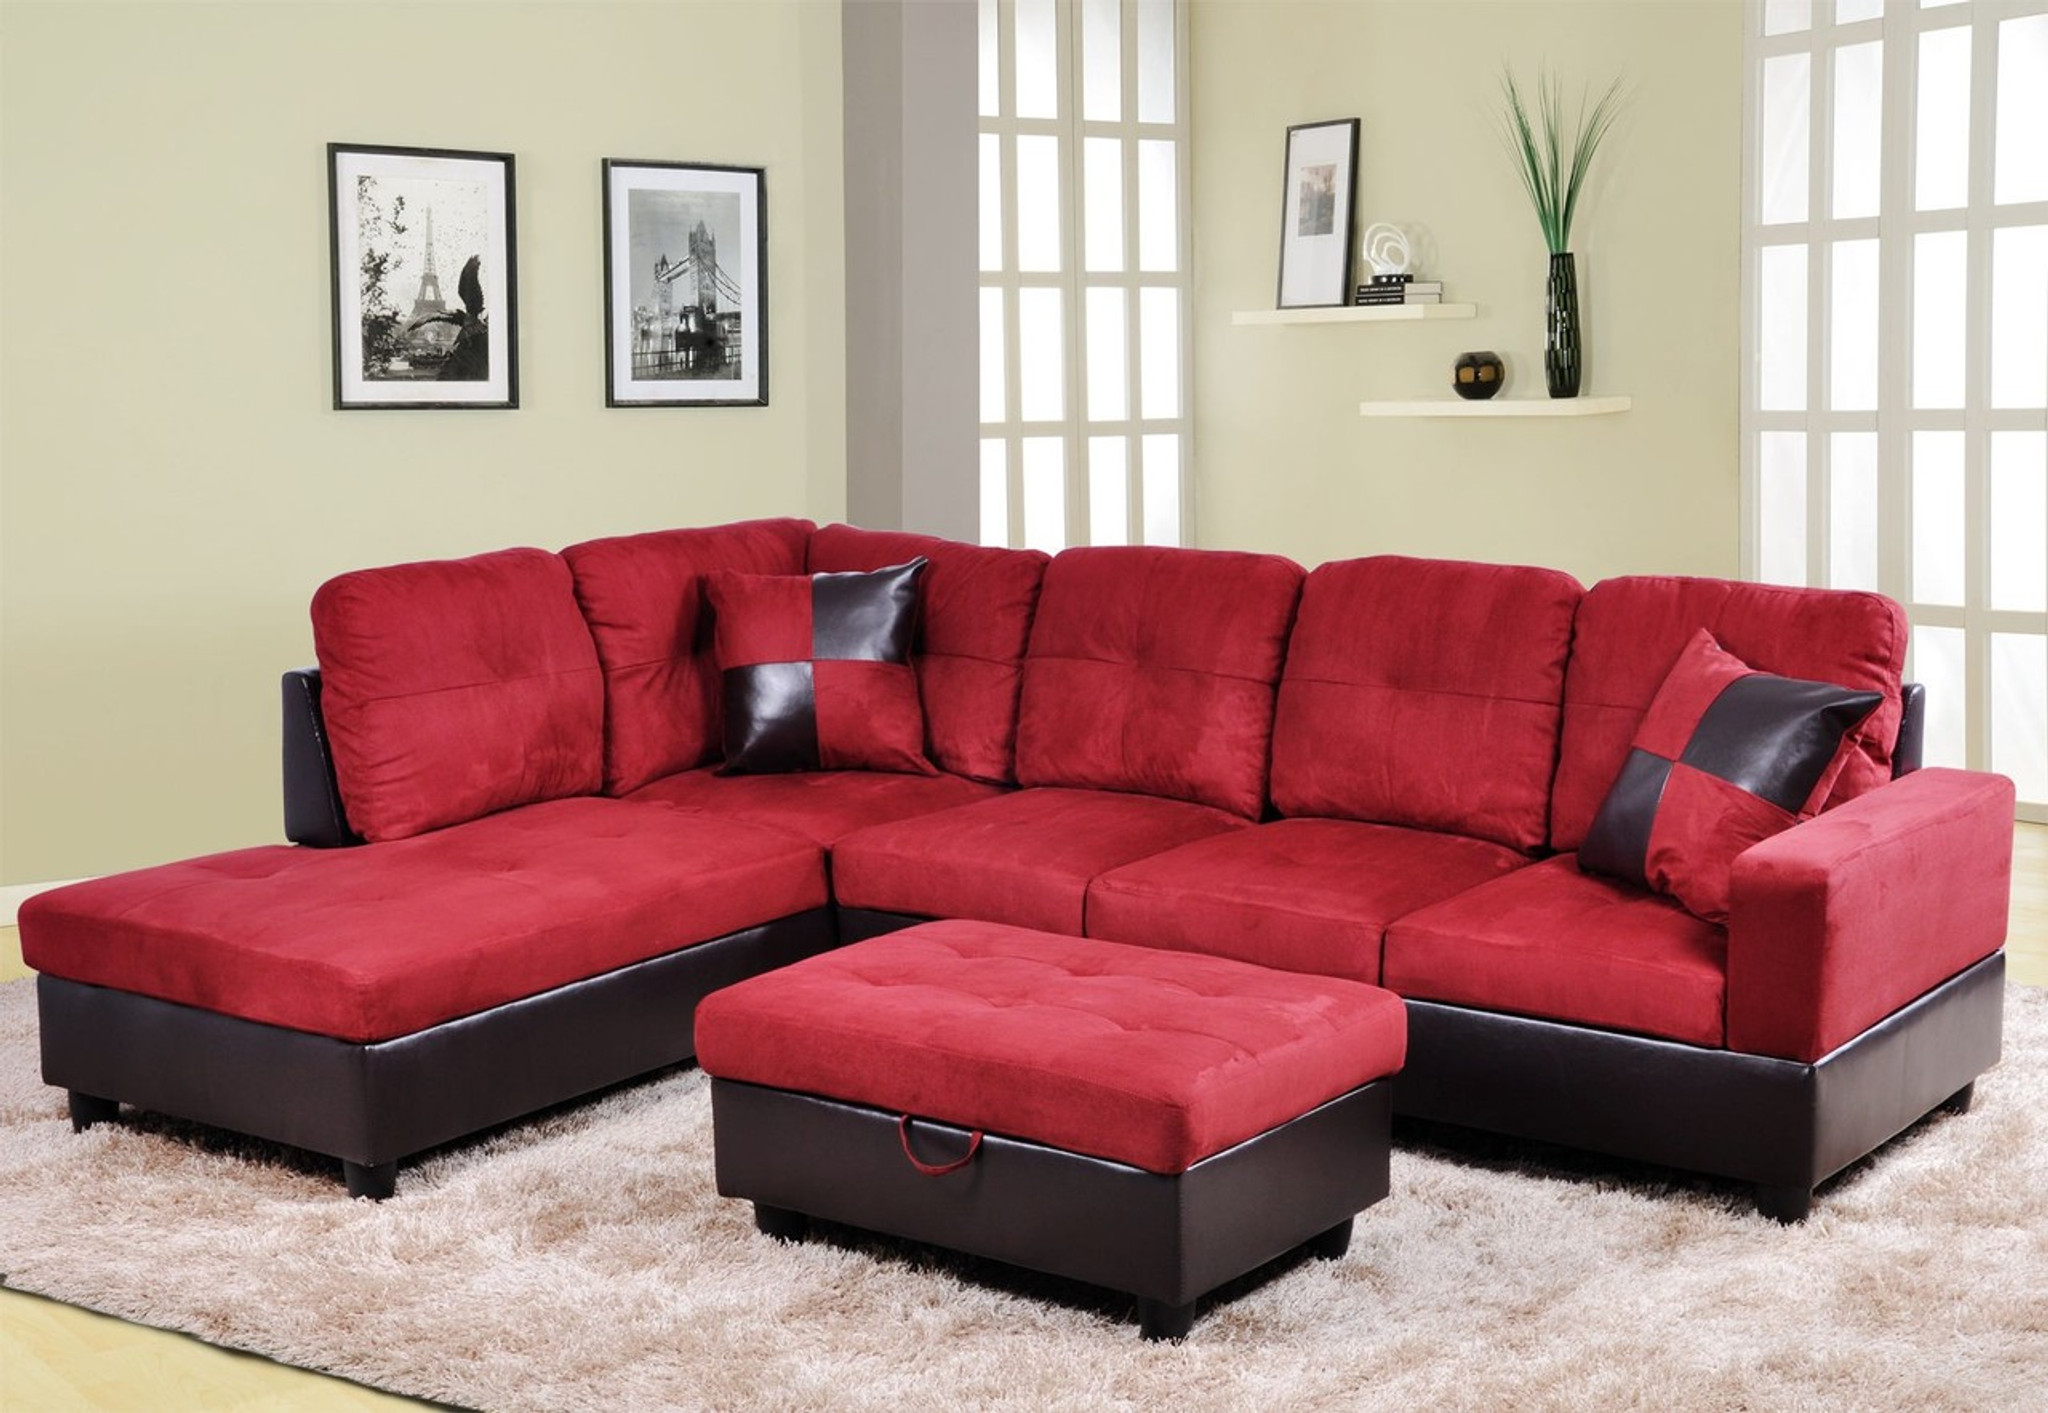 Admirable 2Pc Annie Sectional With Accent Pillows In Red Right Facing Sofa Squirreltailoven Fun Painted Chair Ideas Images Squirreltailovenorg